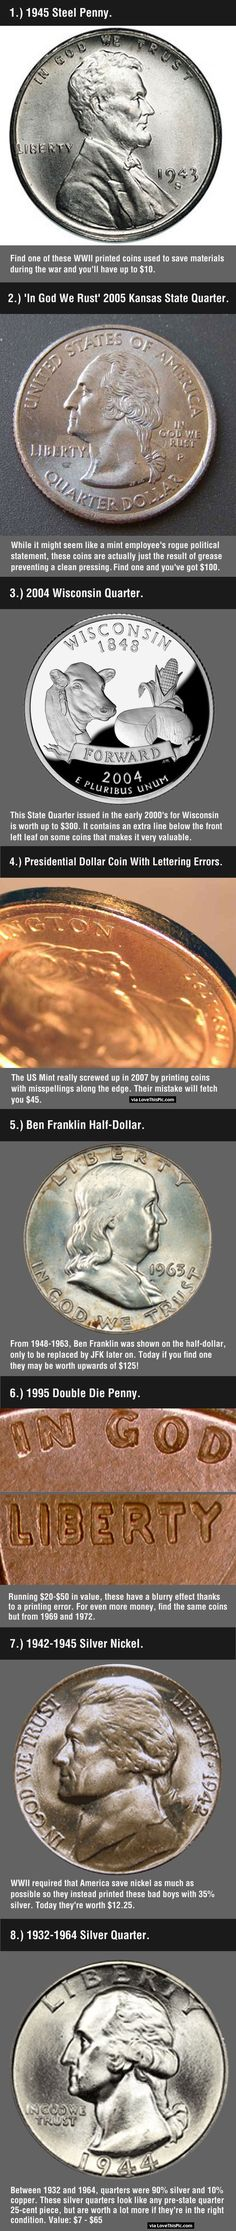 - These 8 Valuable Coins May Be Hiding In Your Change Note to self: Check all of my coins before turning them into cash or spending them. Old Coins, Rare Coins, Valuable Coins, Valuable Pennies, Rare Pennies, Coins Worth Money, Coin Worth, Coin Values, Little Bit